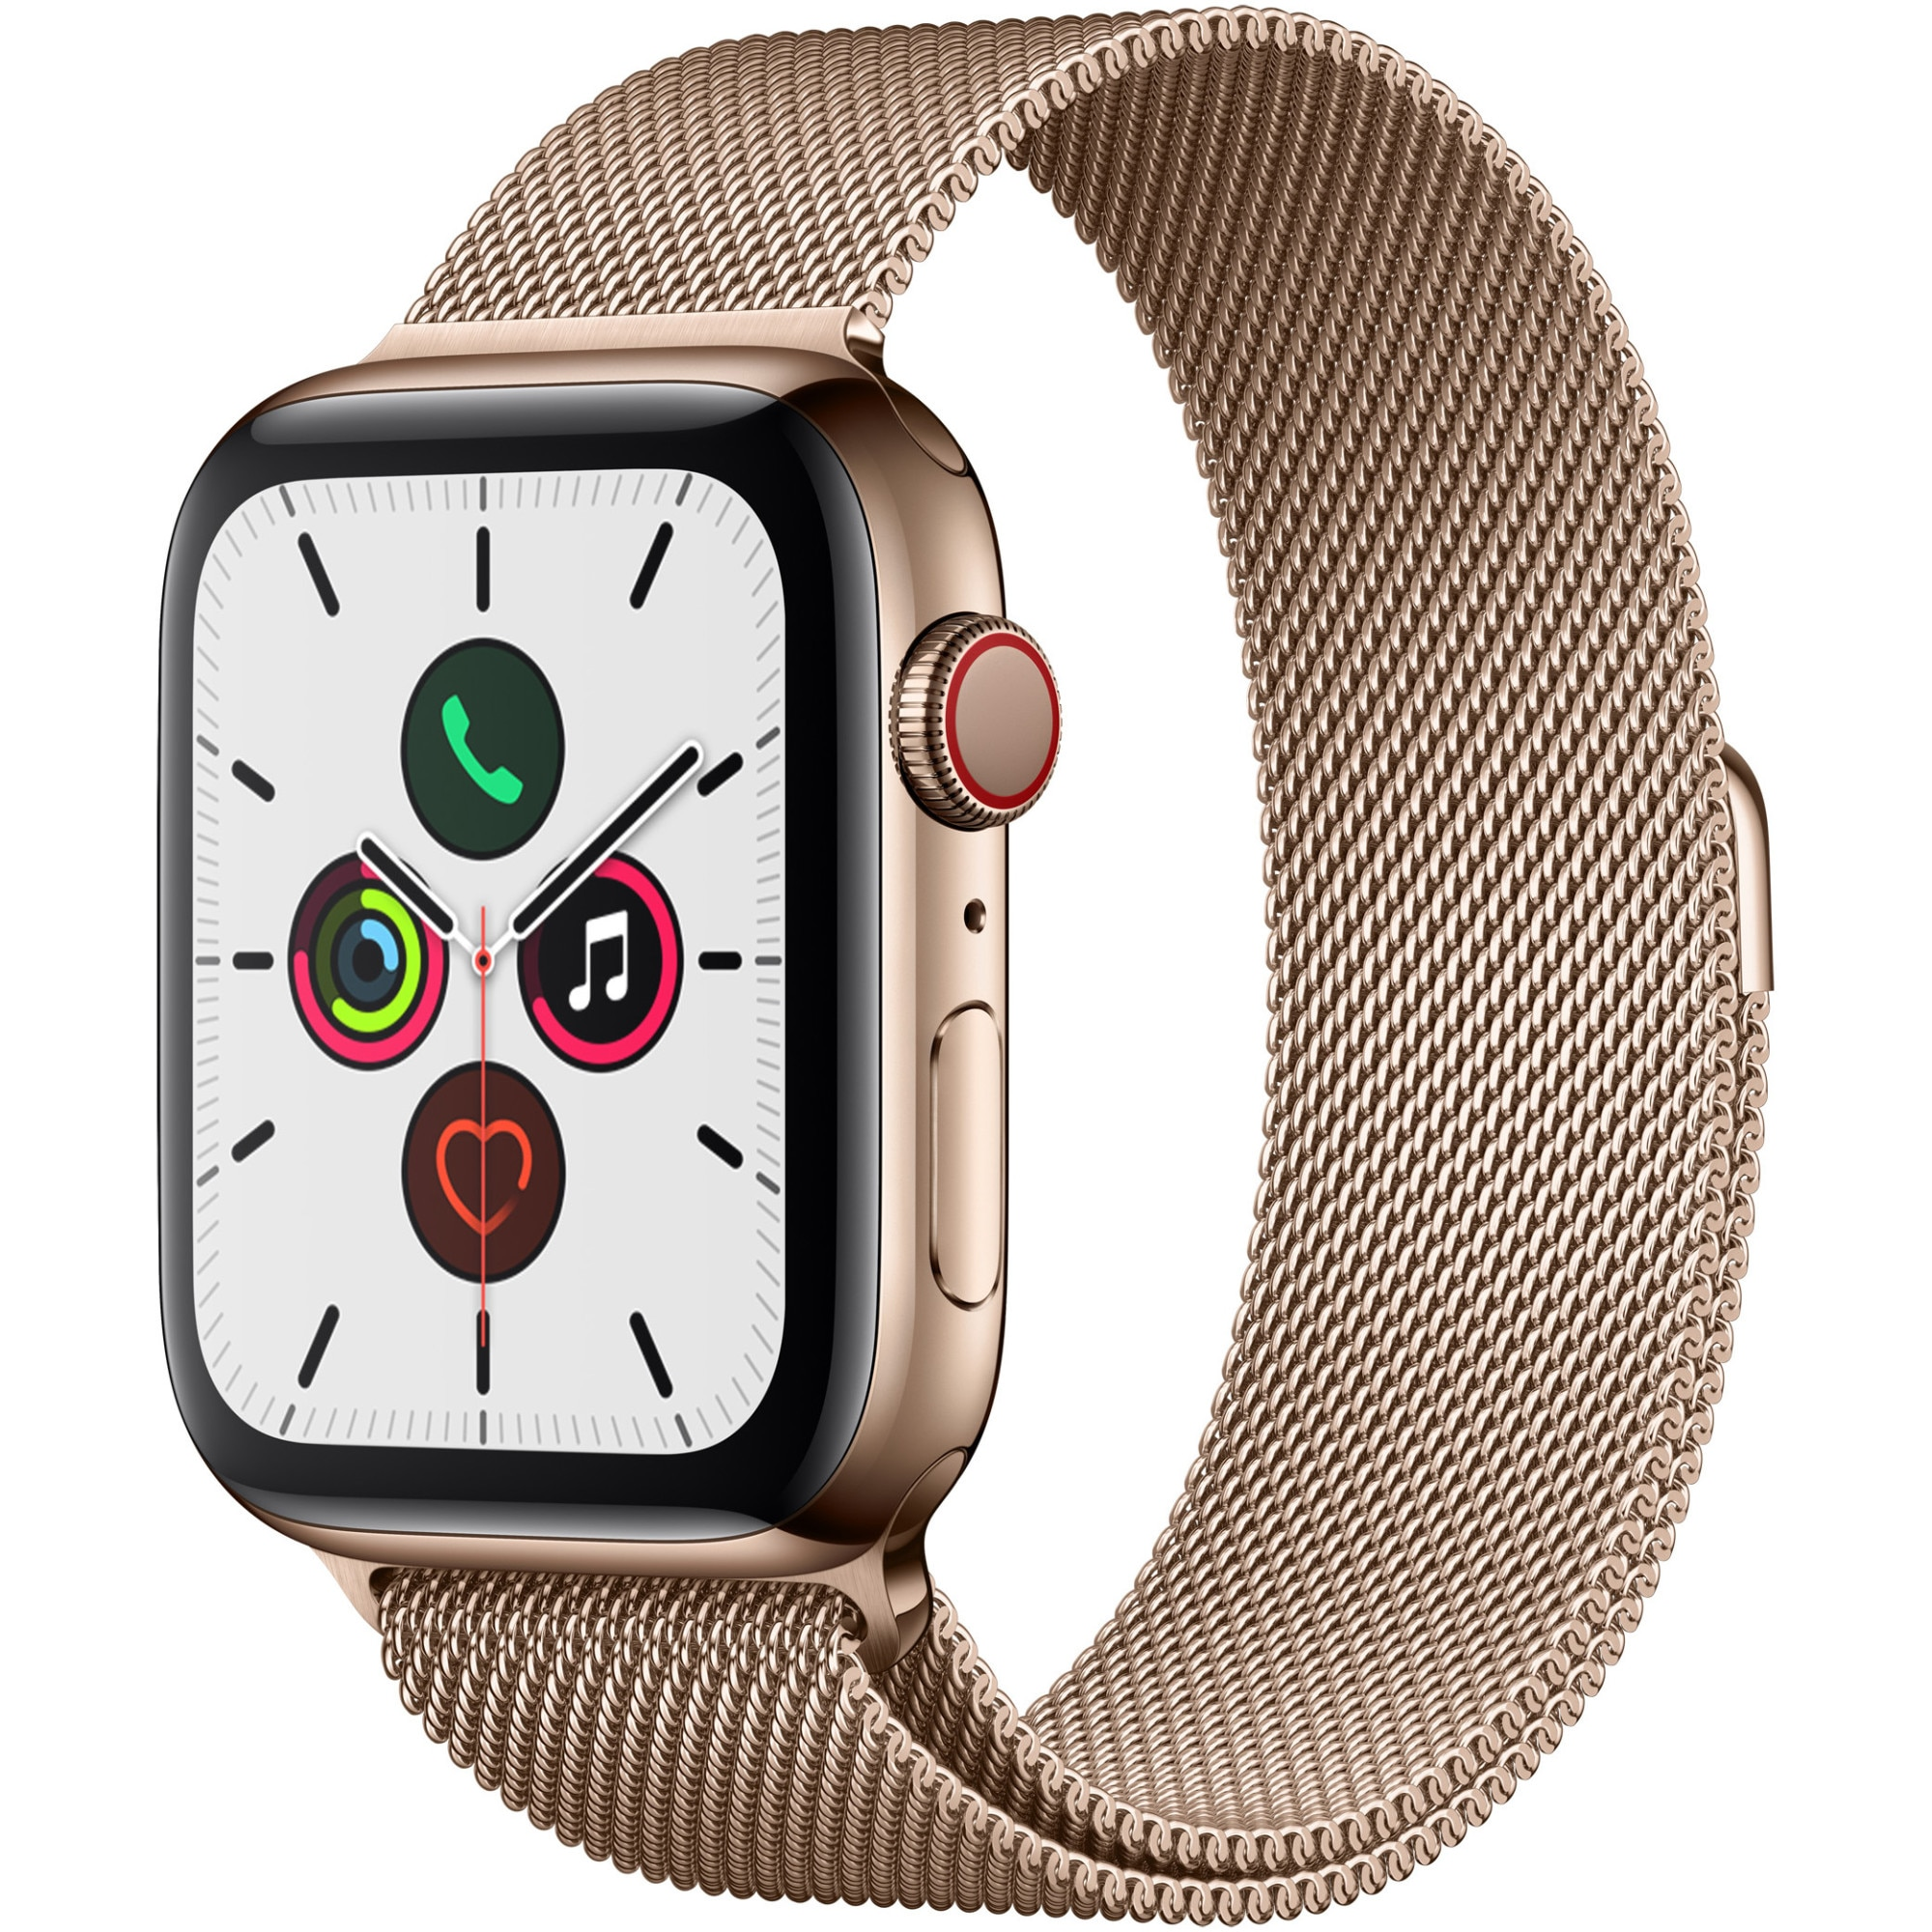 Fotografie Apple Watch 5, GPS, Cellular, Carcasa Gold Stainless Steel 44mm, Gold Milanese Loop